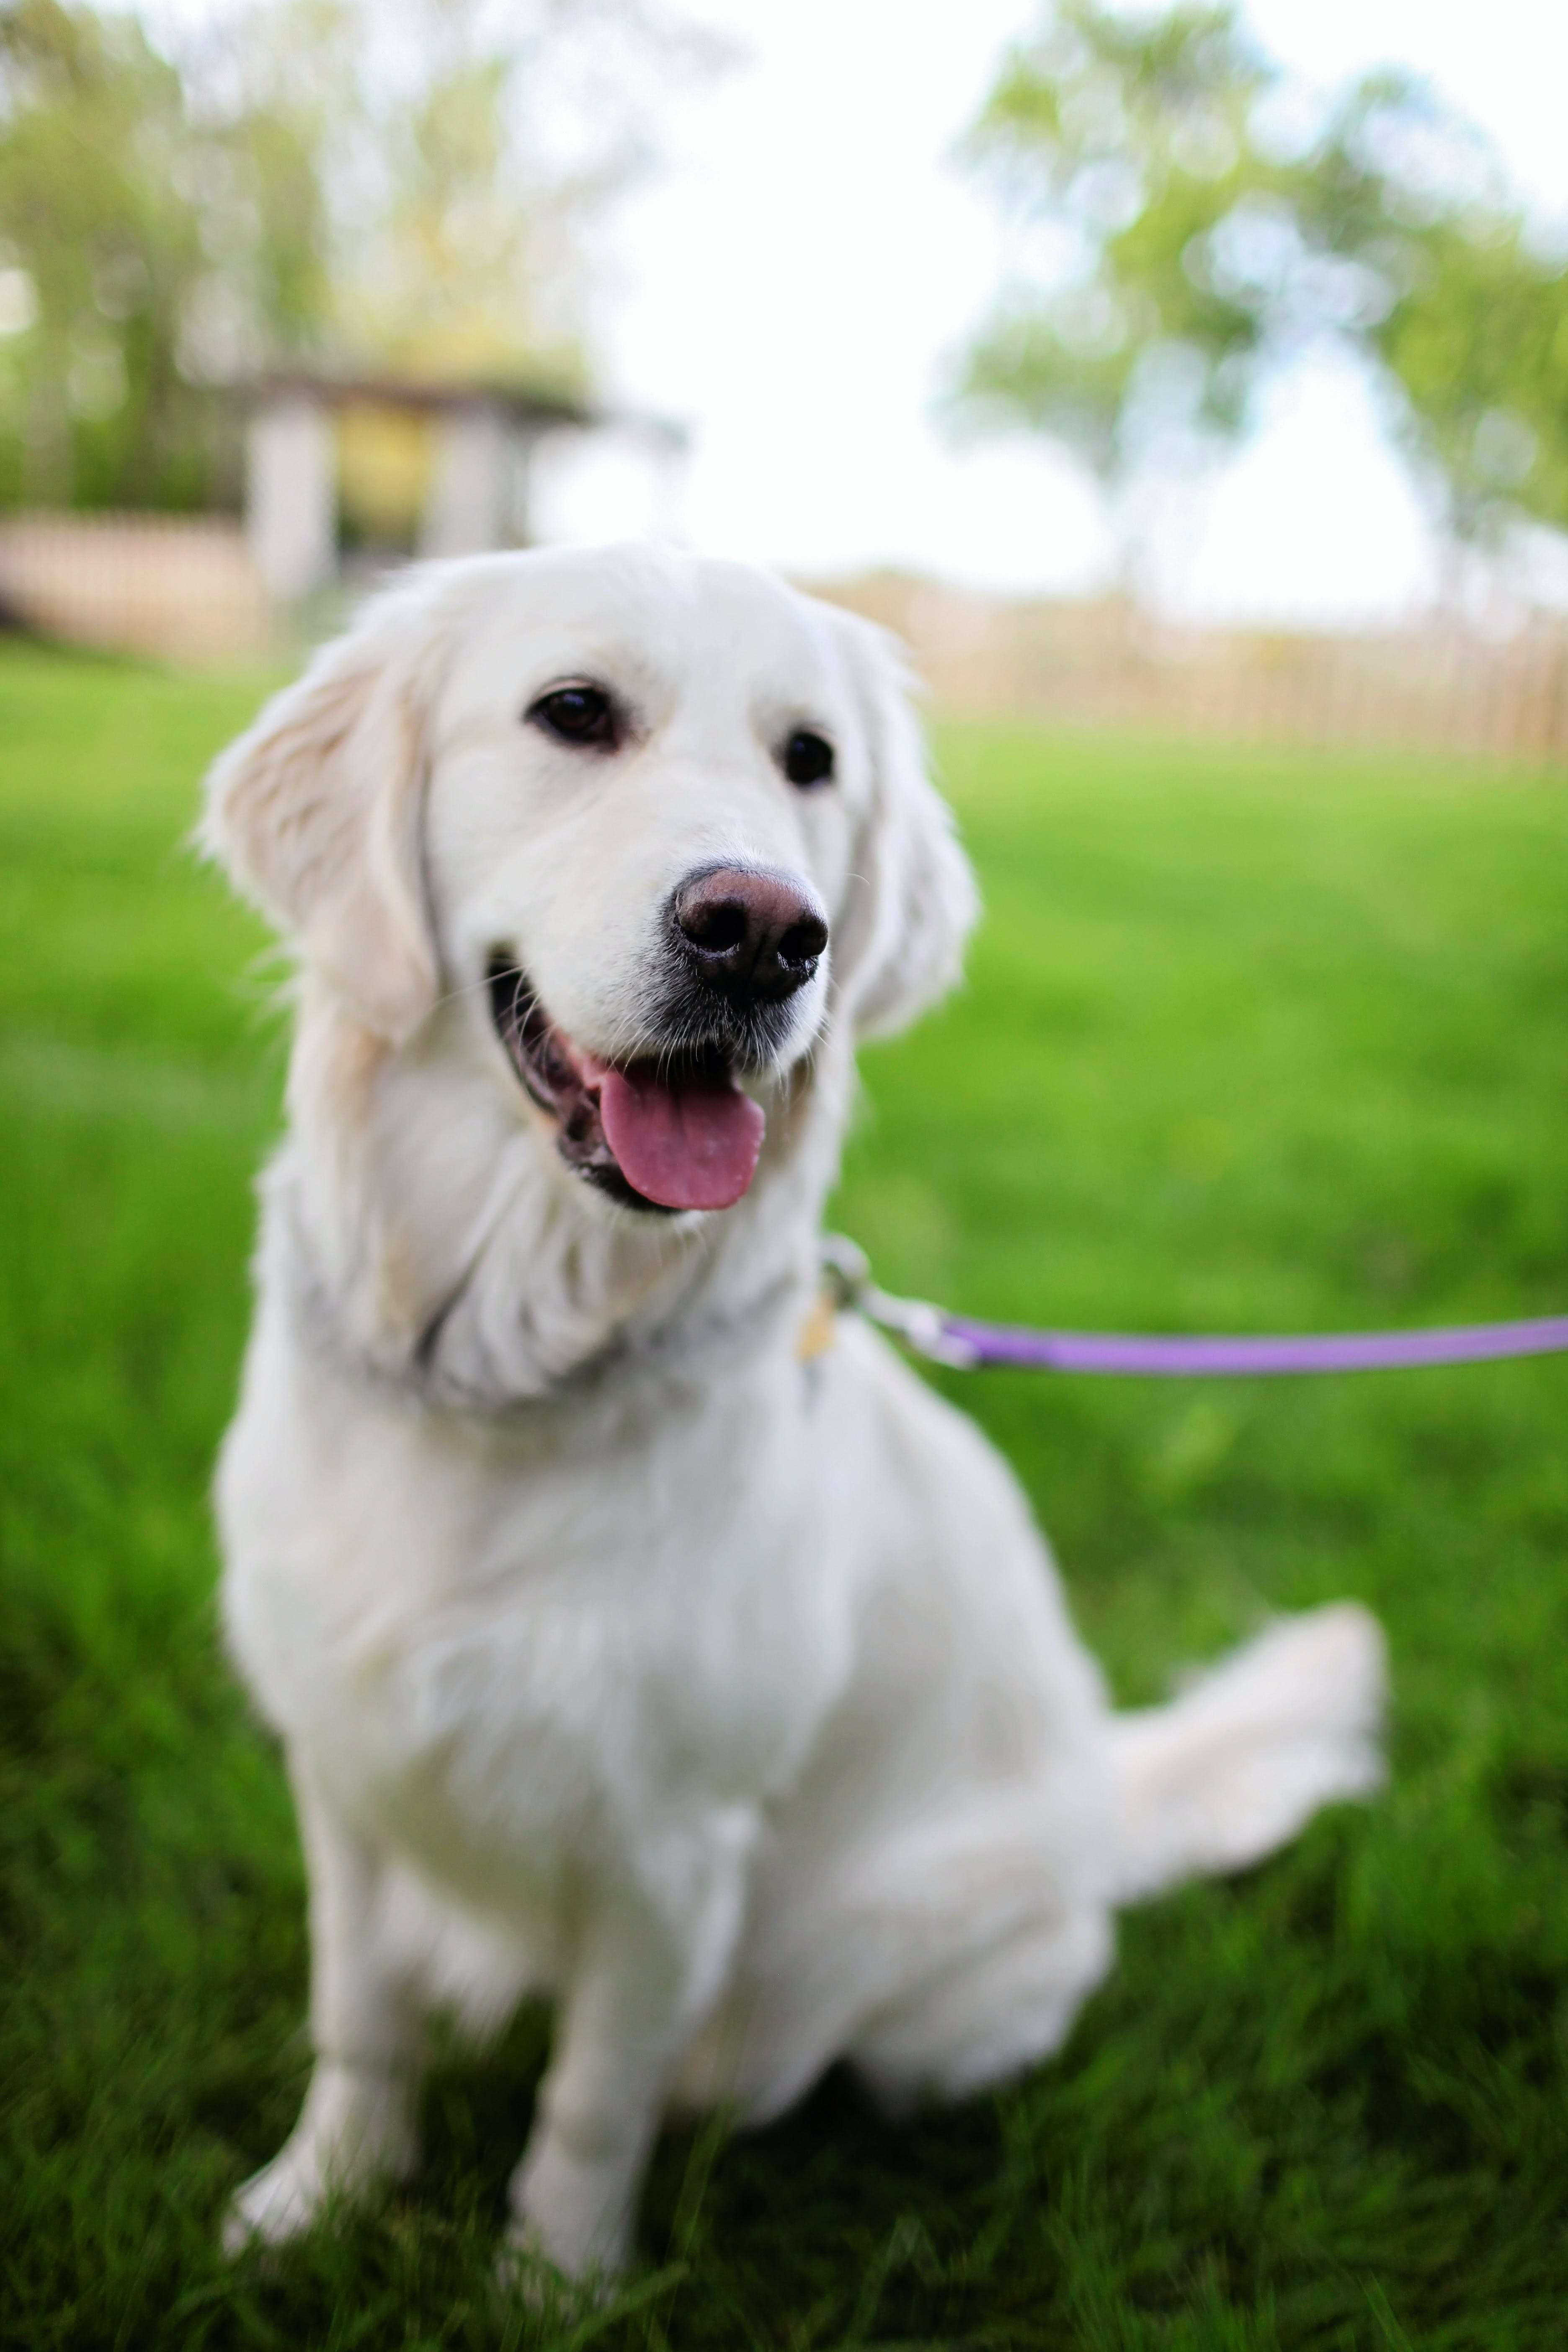 Adult Cream Retriever Sitting on Grass